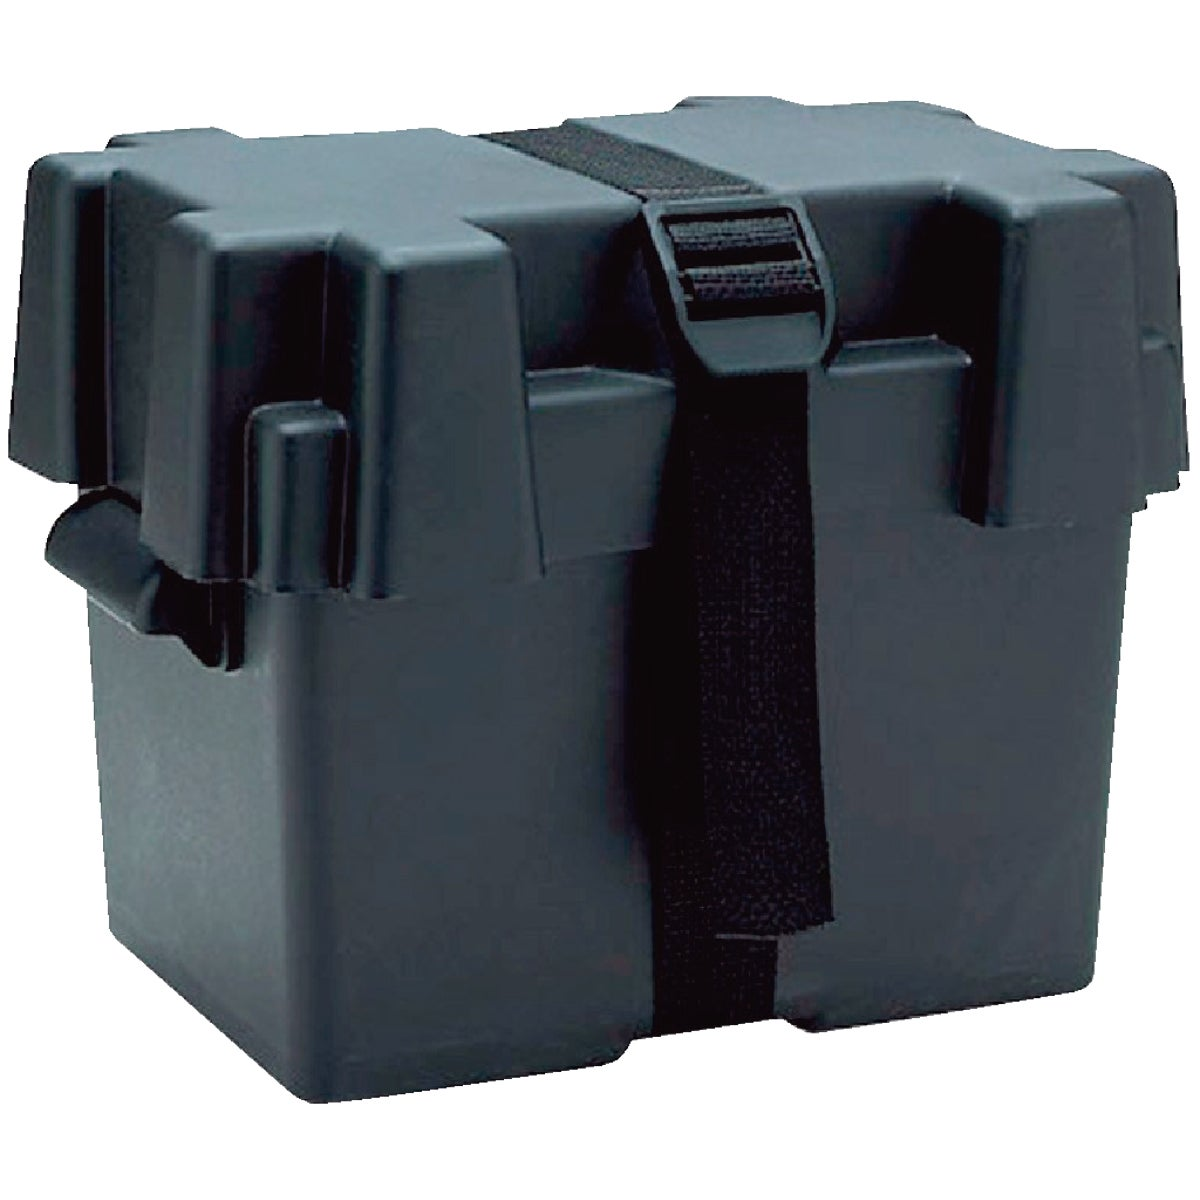 24 SERIES BATTERY BOX